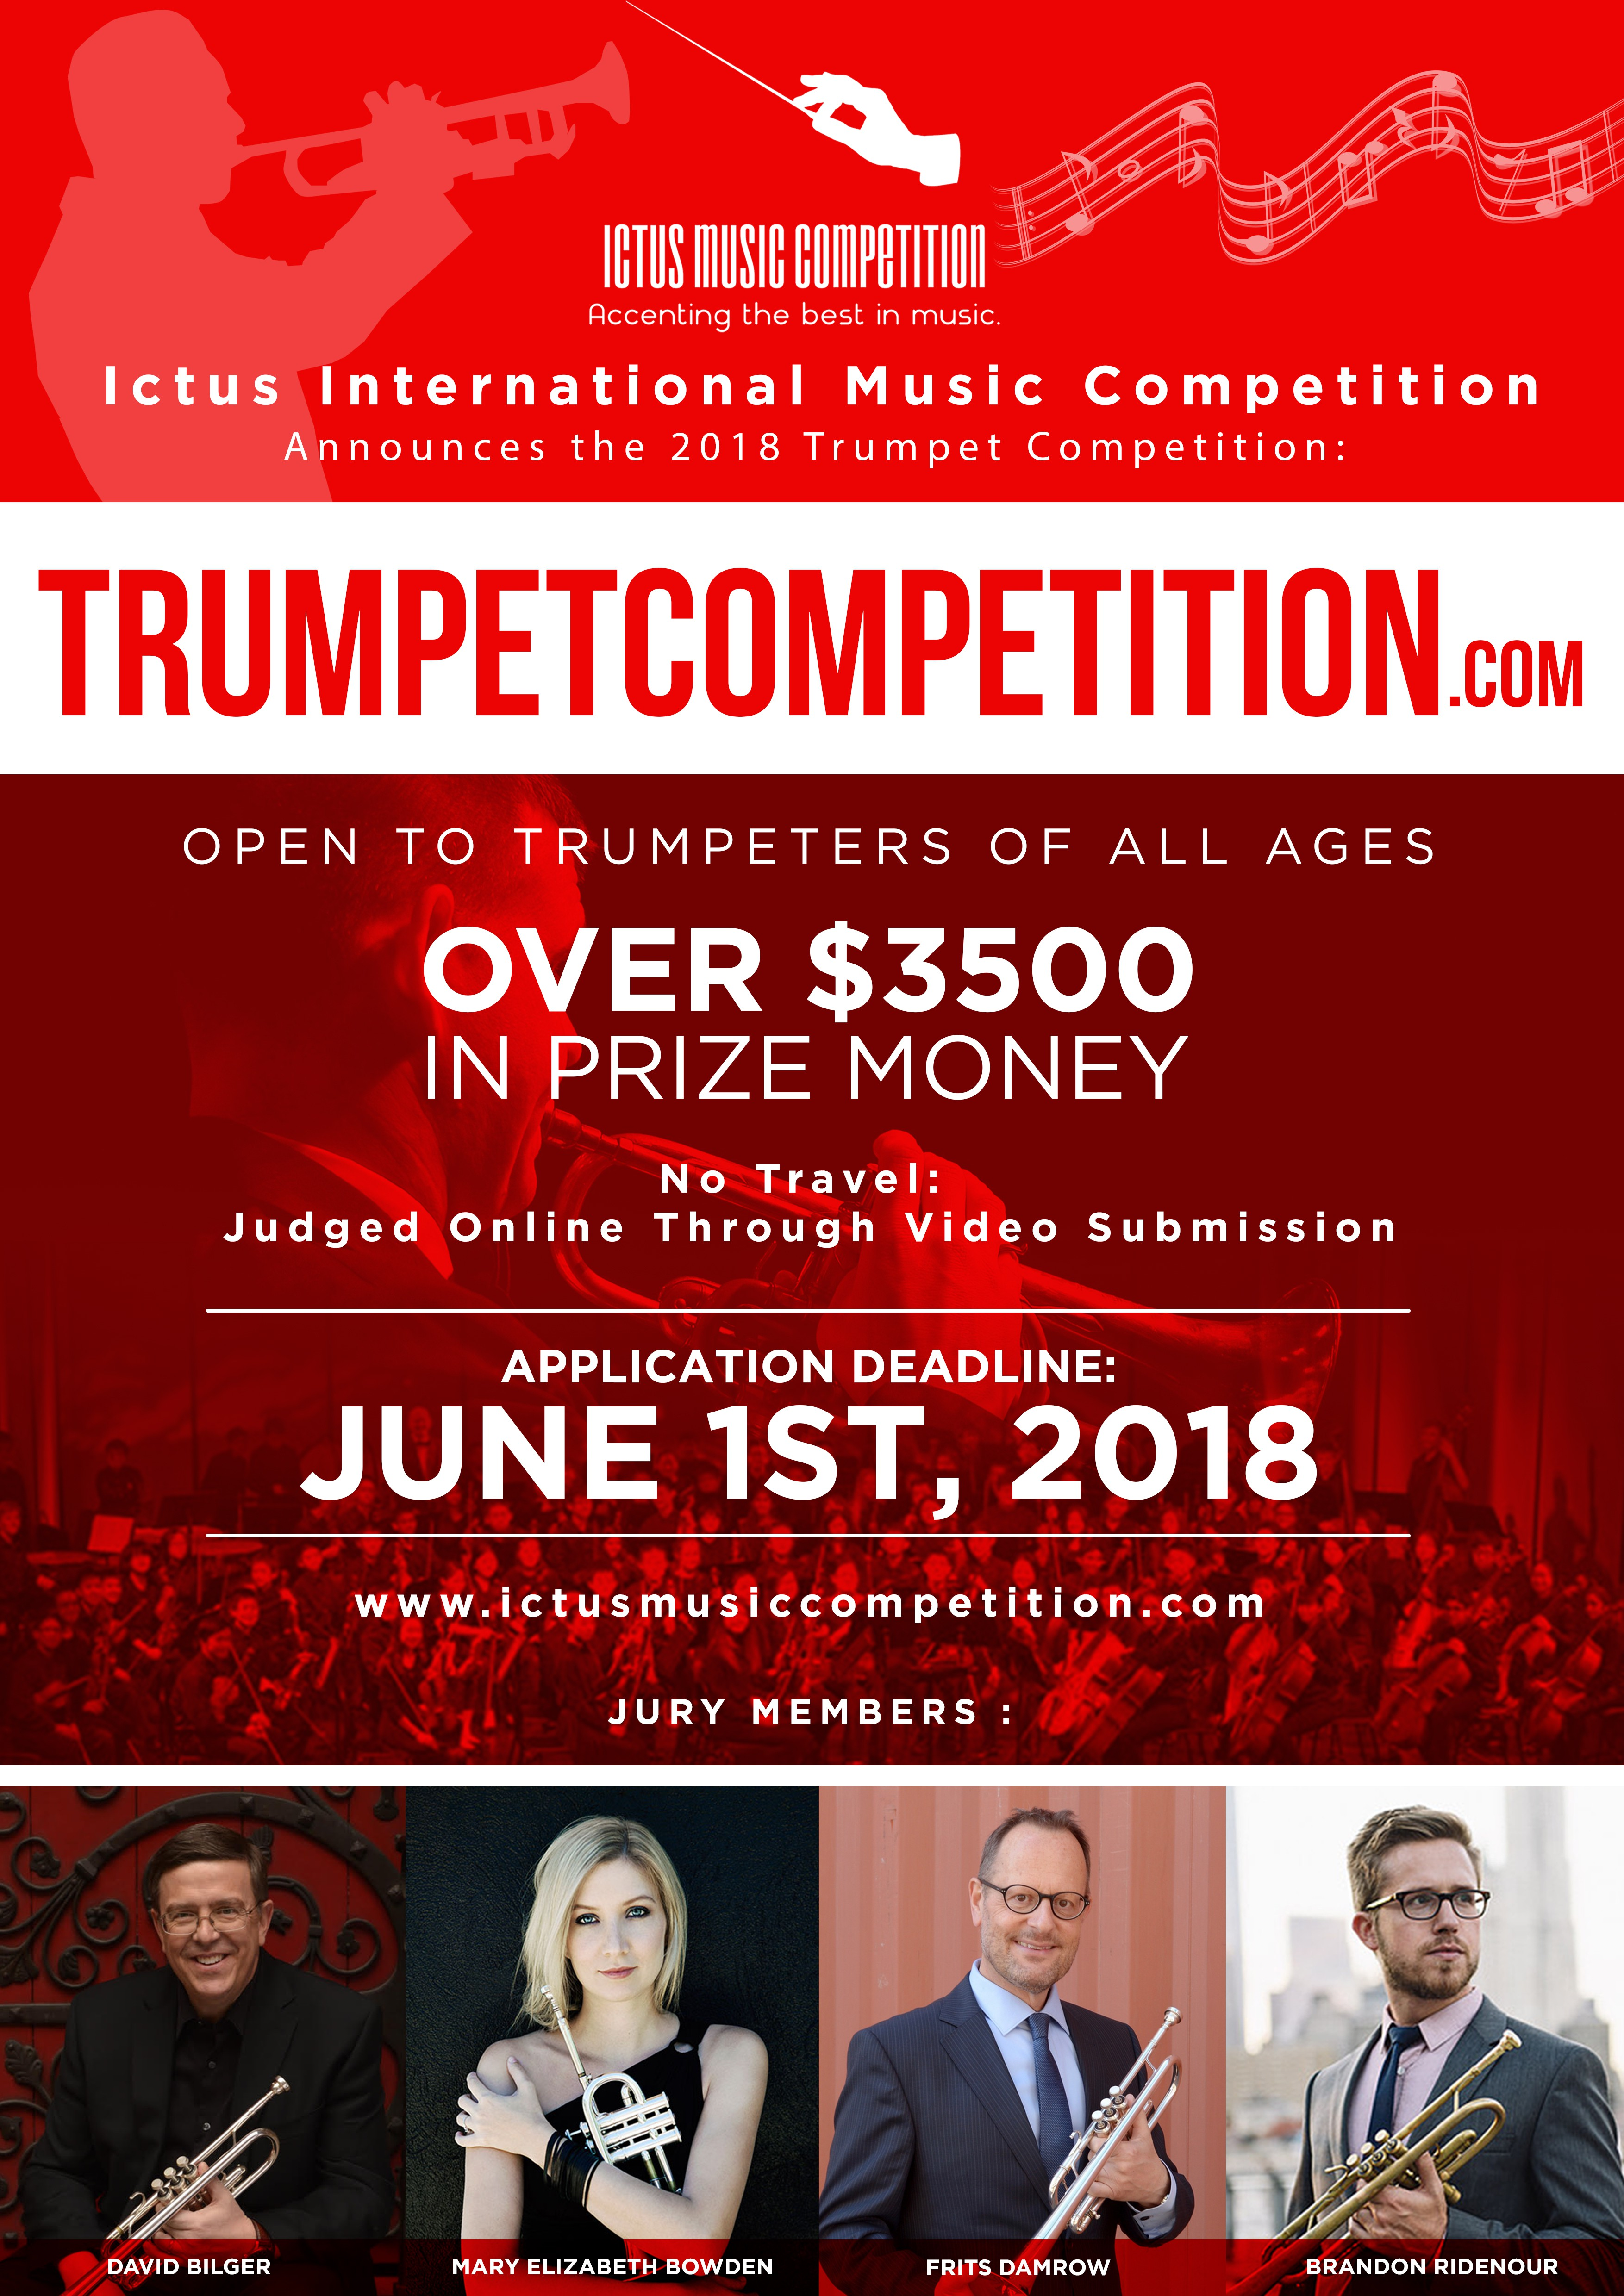 New Major International Trumpet Competition with Renowned Panel of Judges